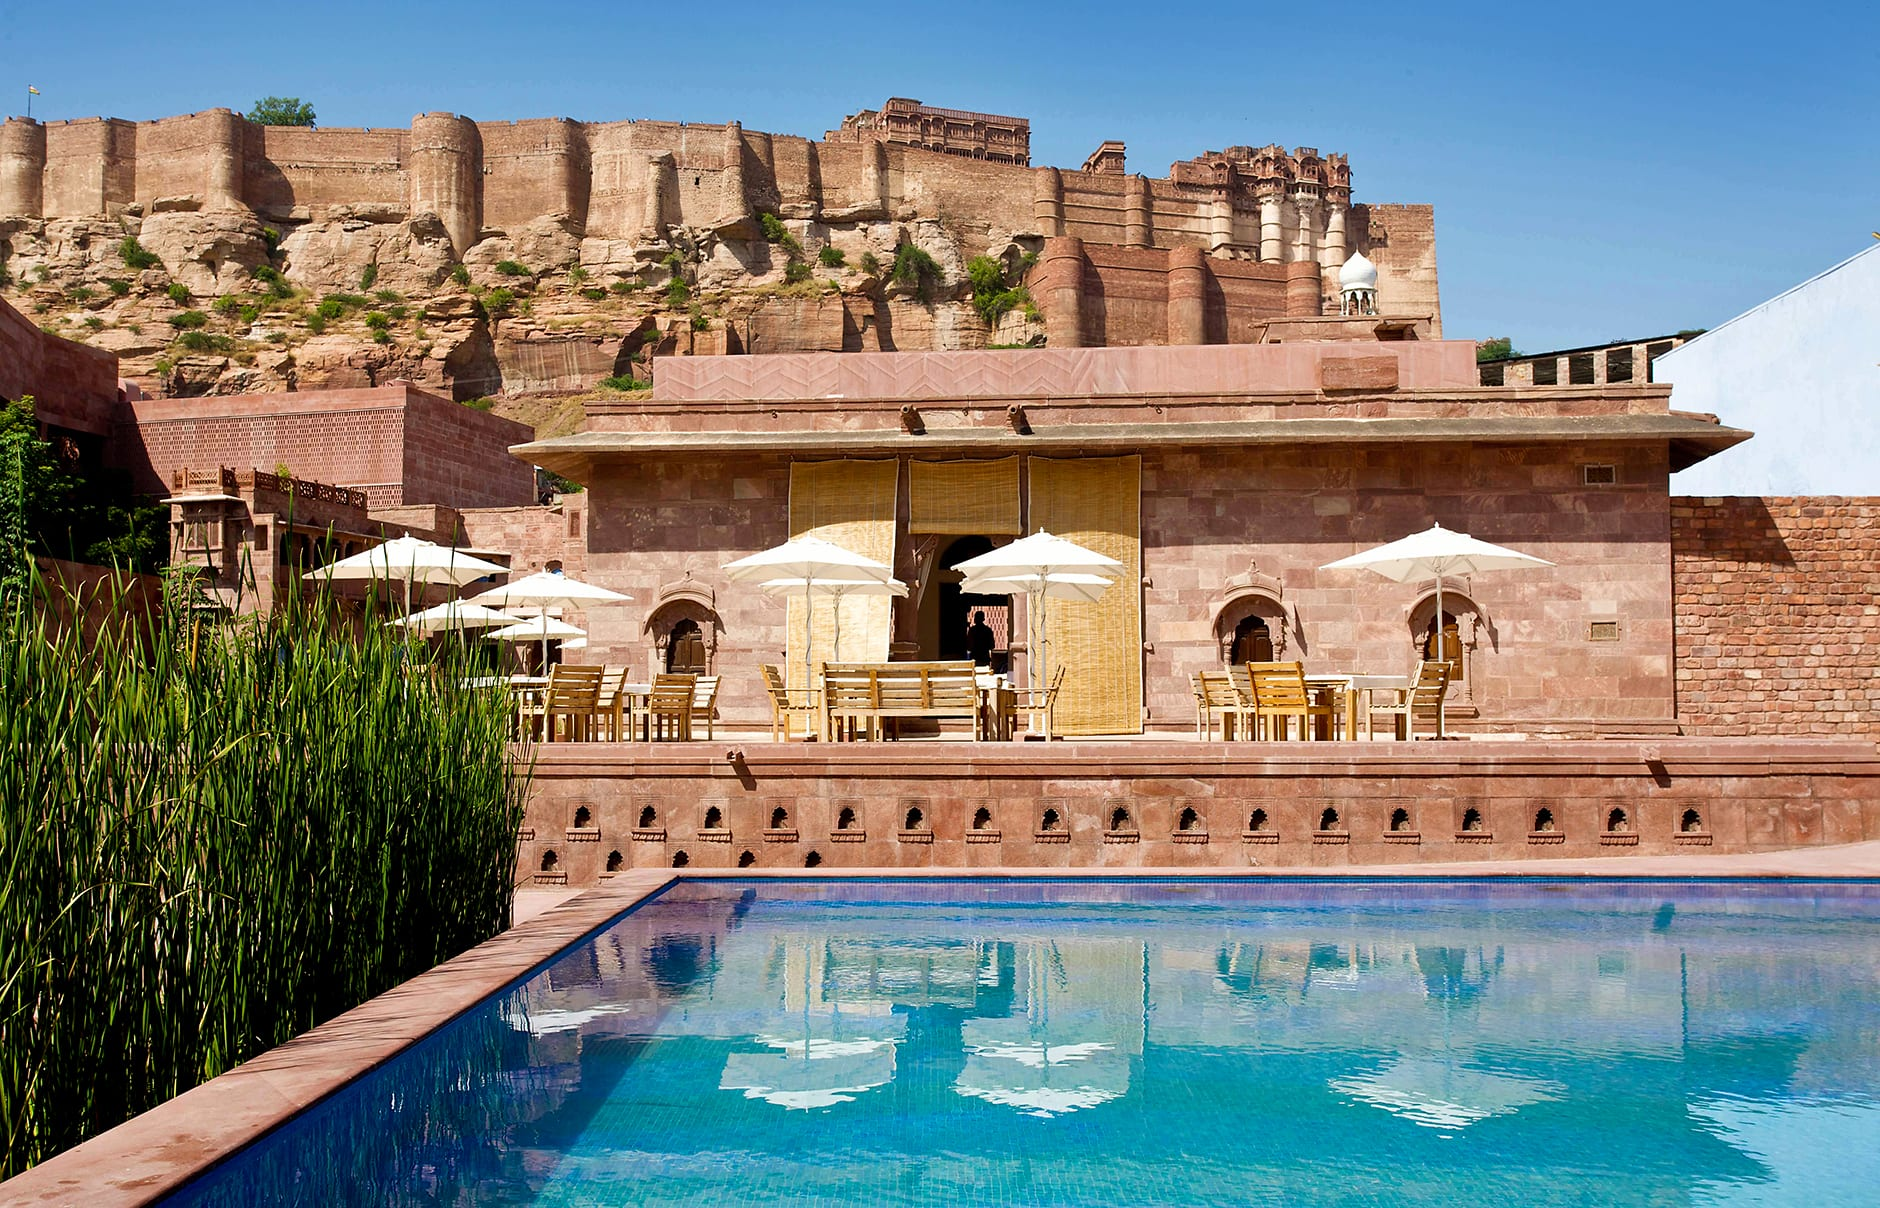 Baradari Restaurant outdoor. Raas Jodhpur, India. © Rass